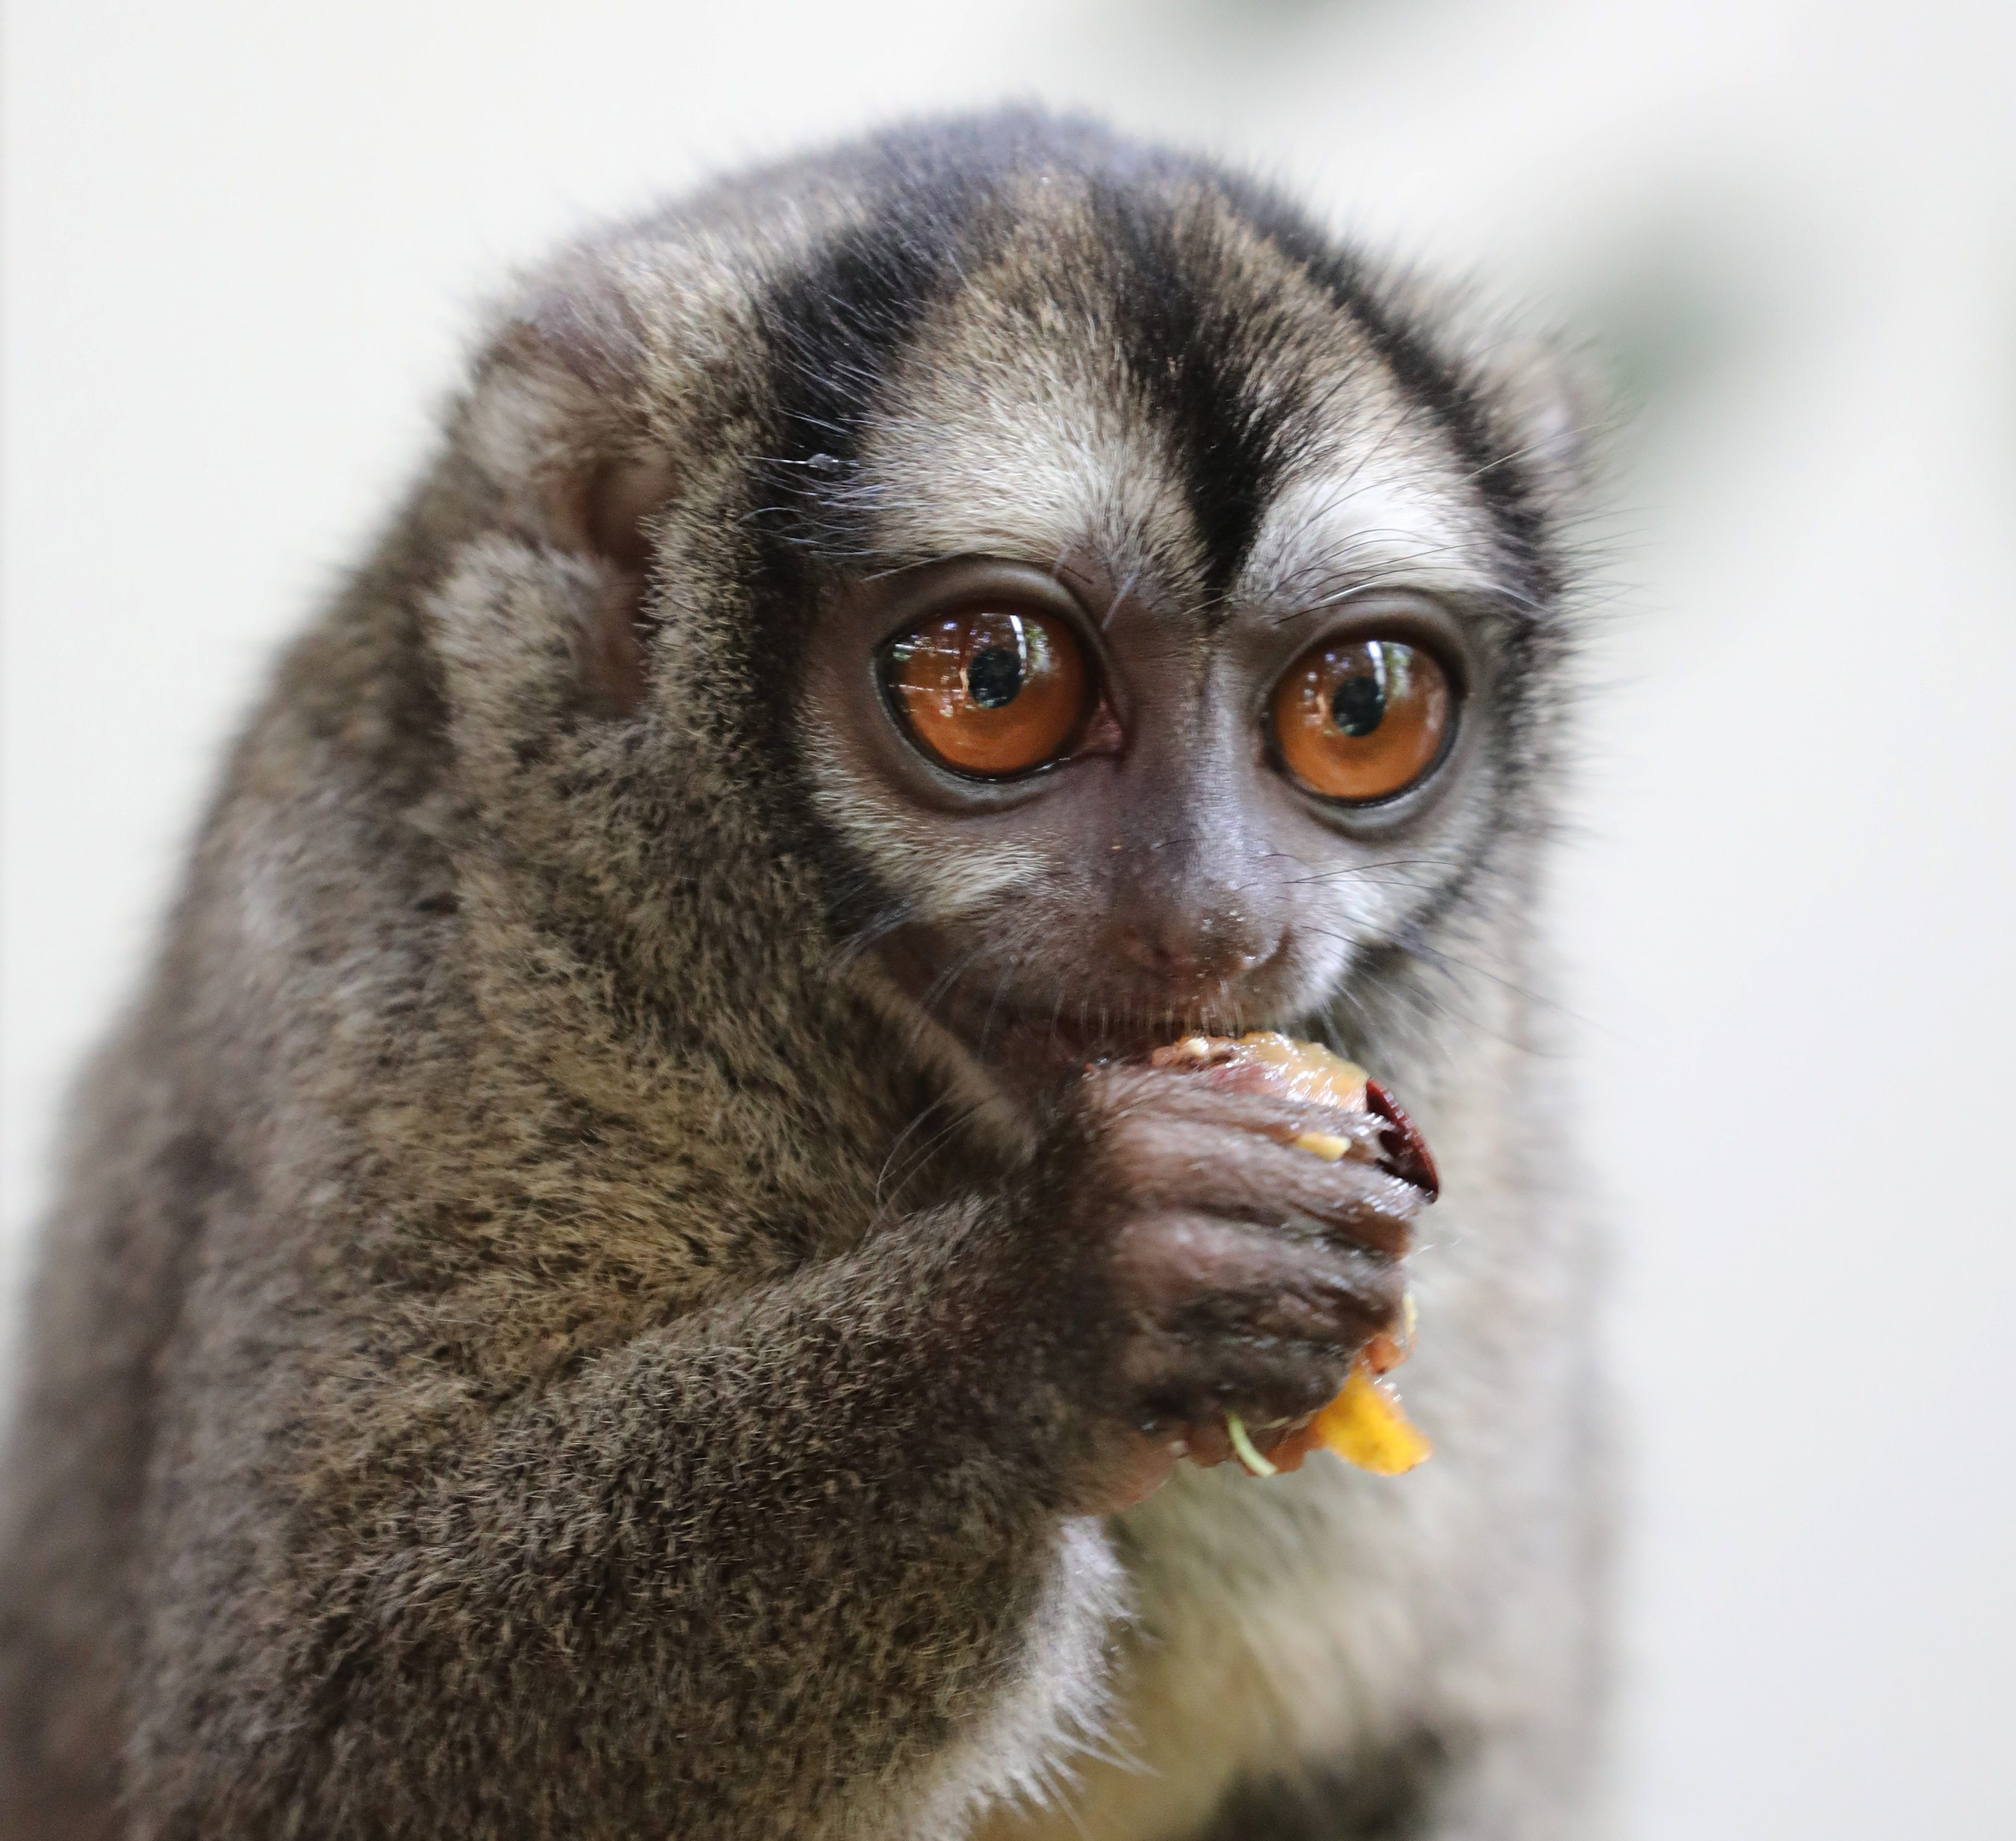 Close-up of a Gray-bellied night monkey